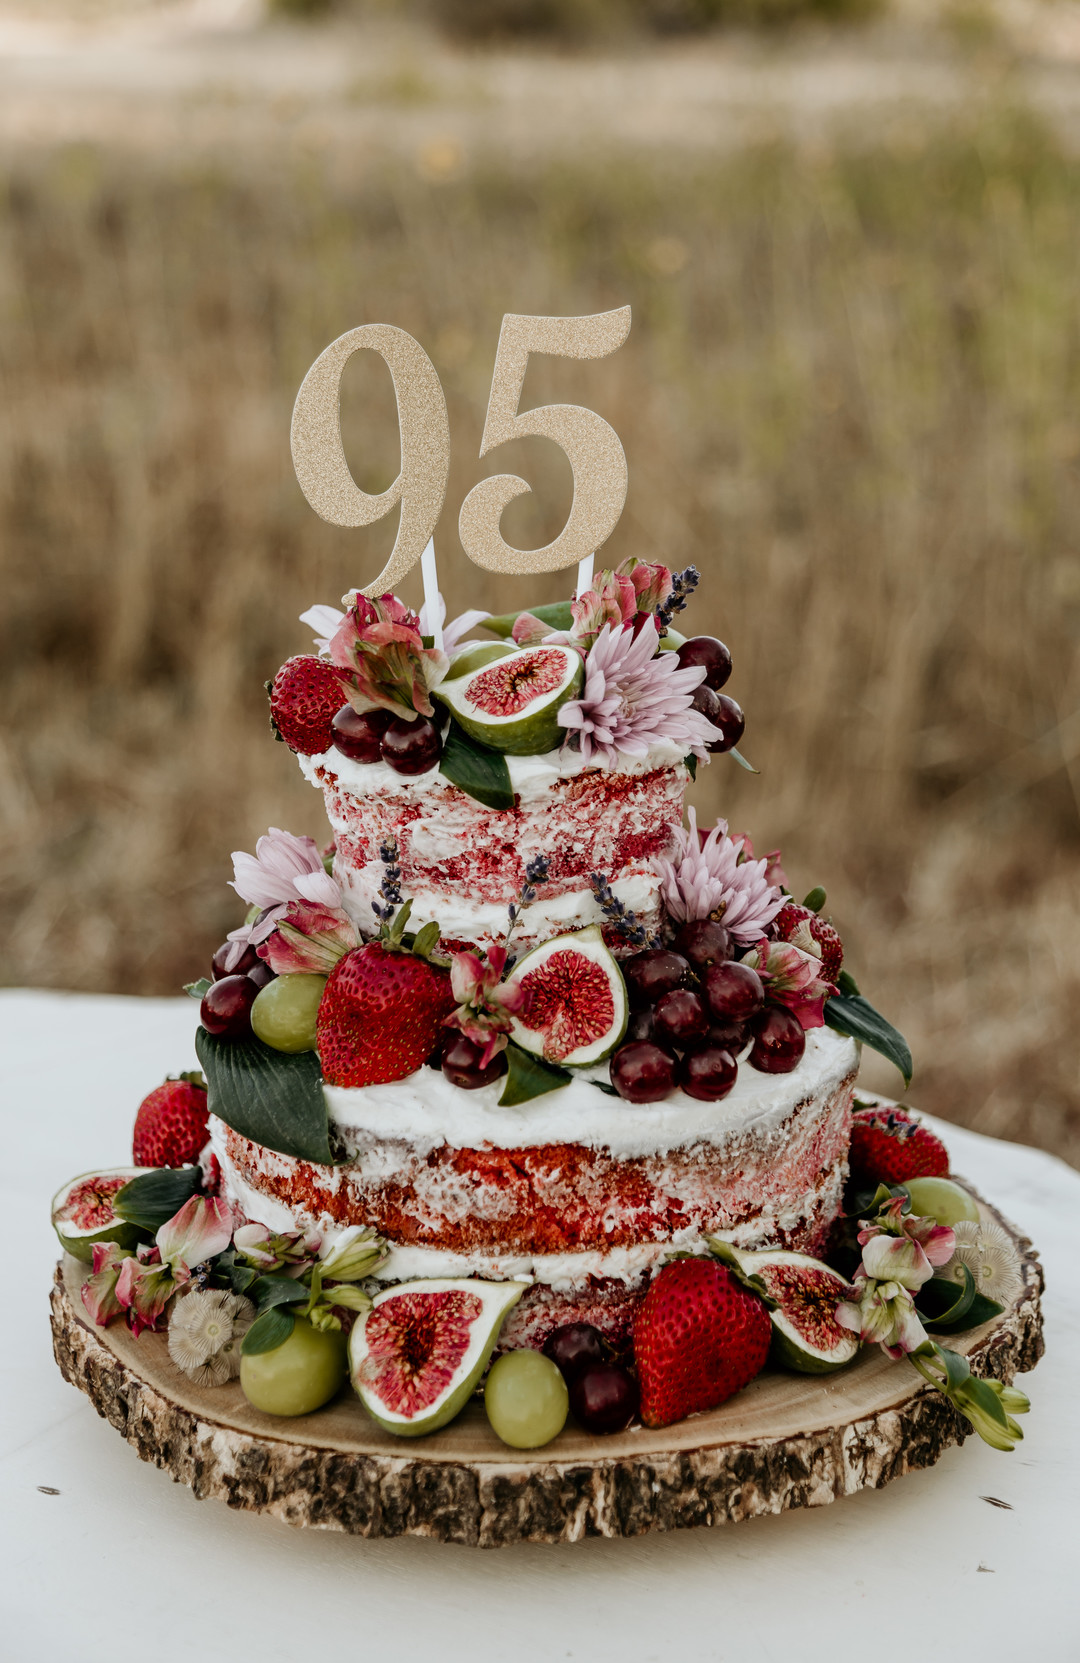 Looking For A Unique Birthday Cake Your Next Party Check Out This Awesome 95th